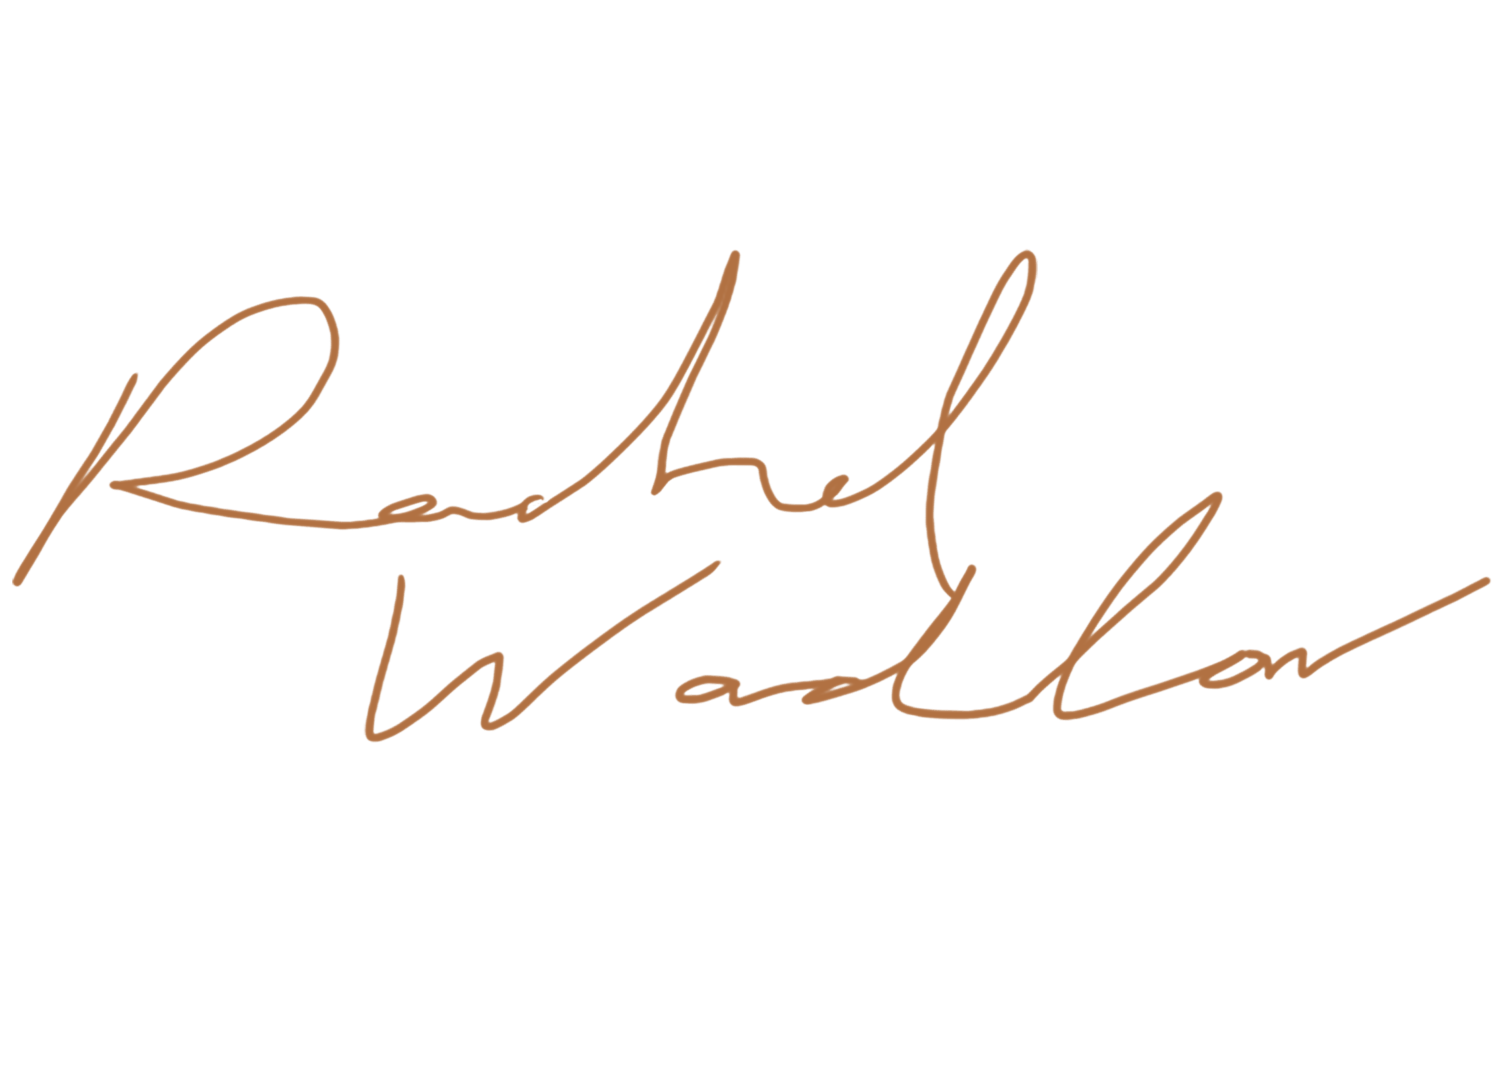 RACHEL WADLOW ART | Custom Art + Design For Every Need